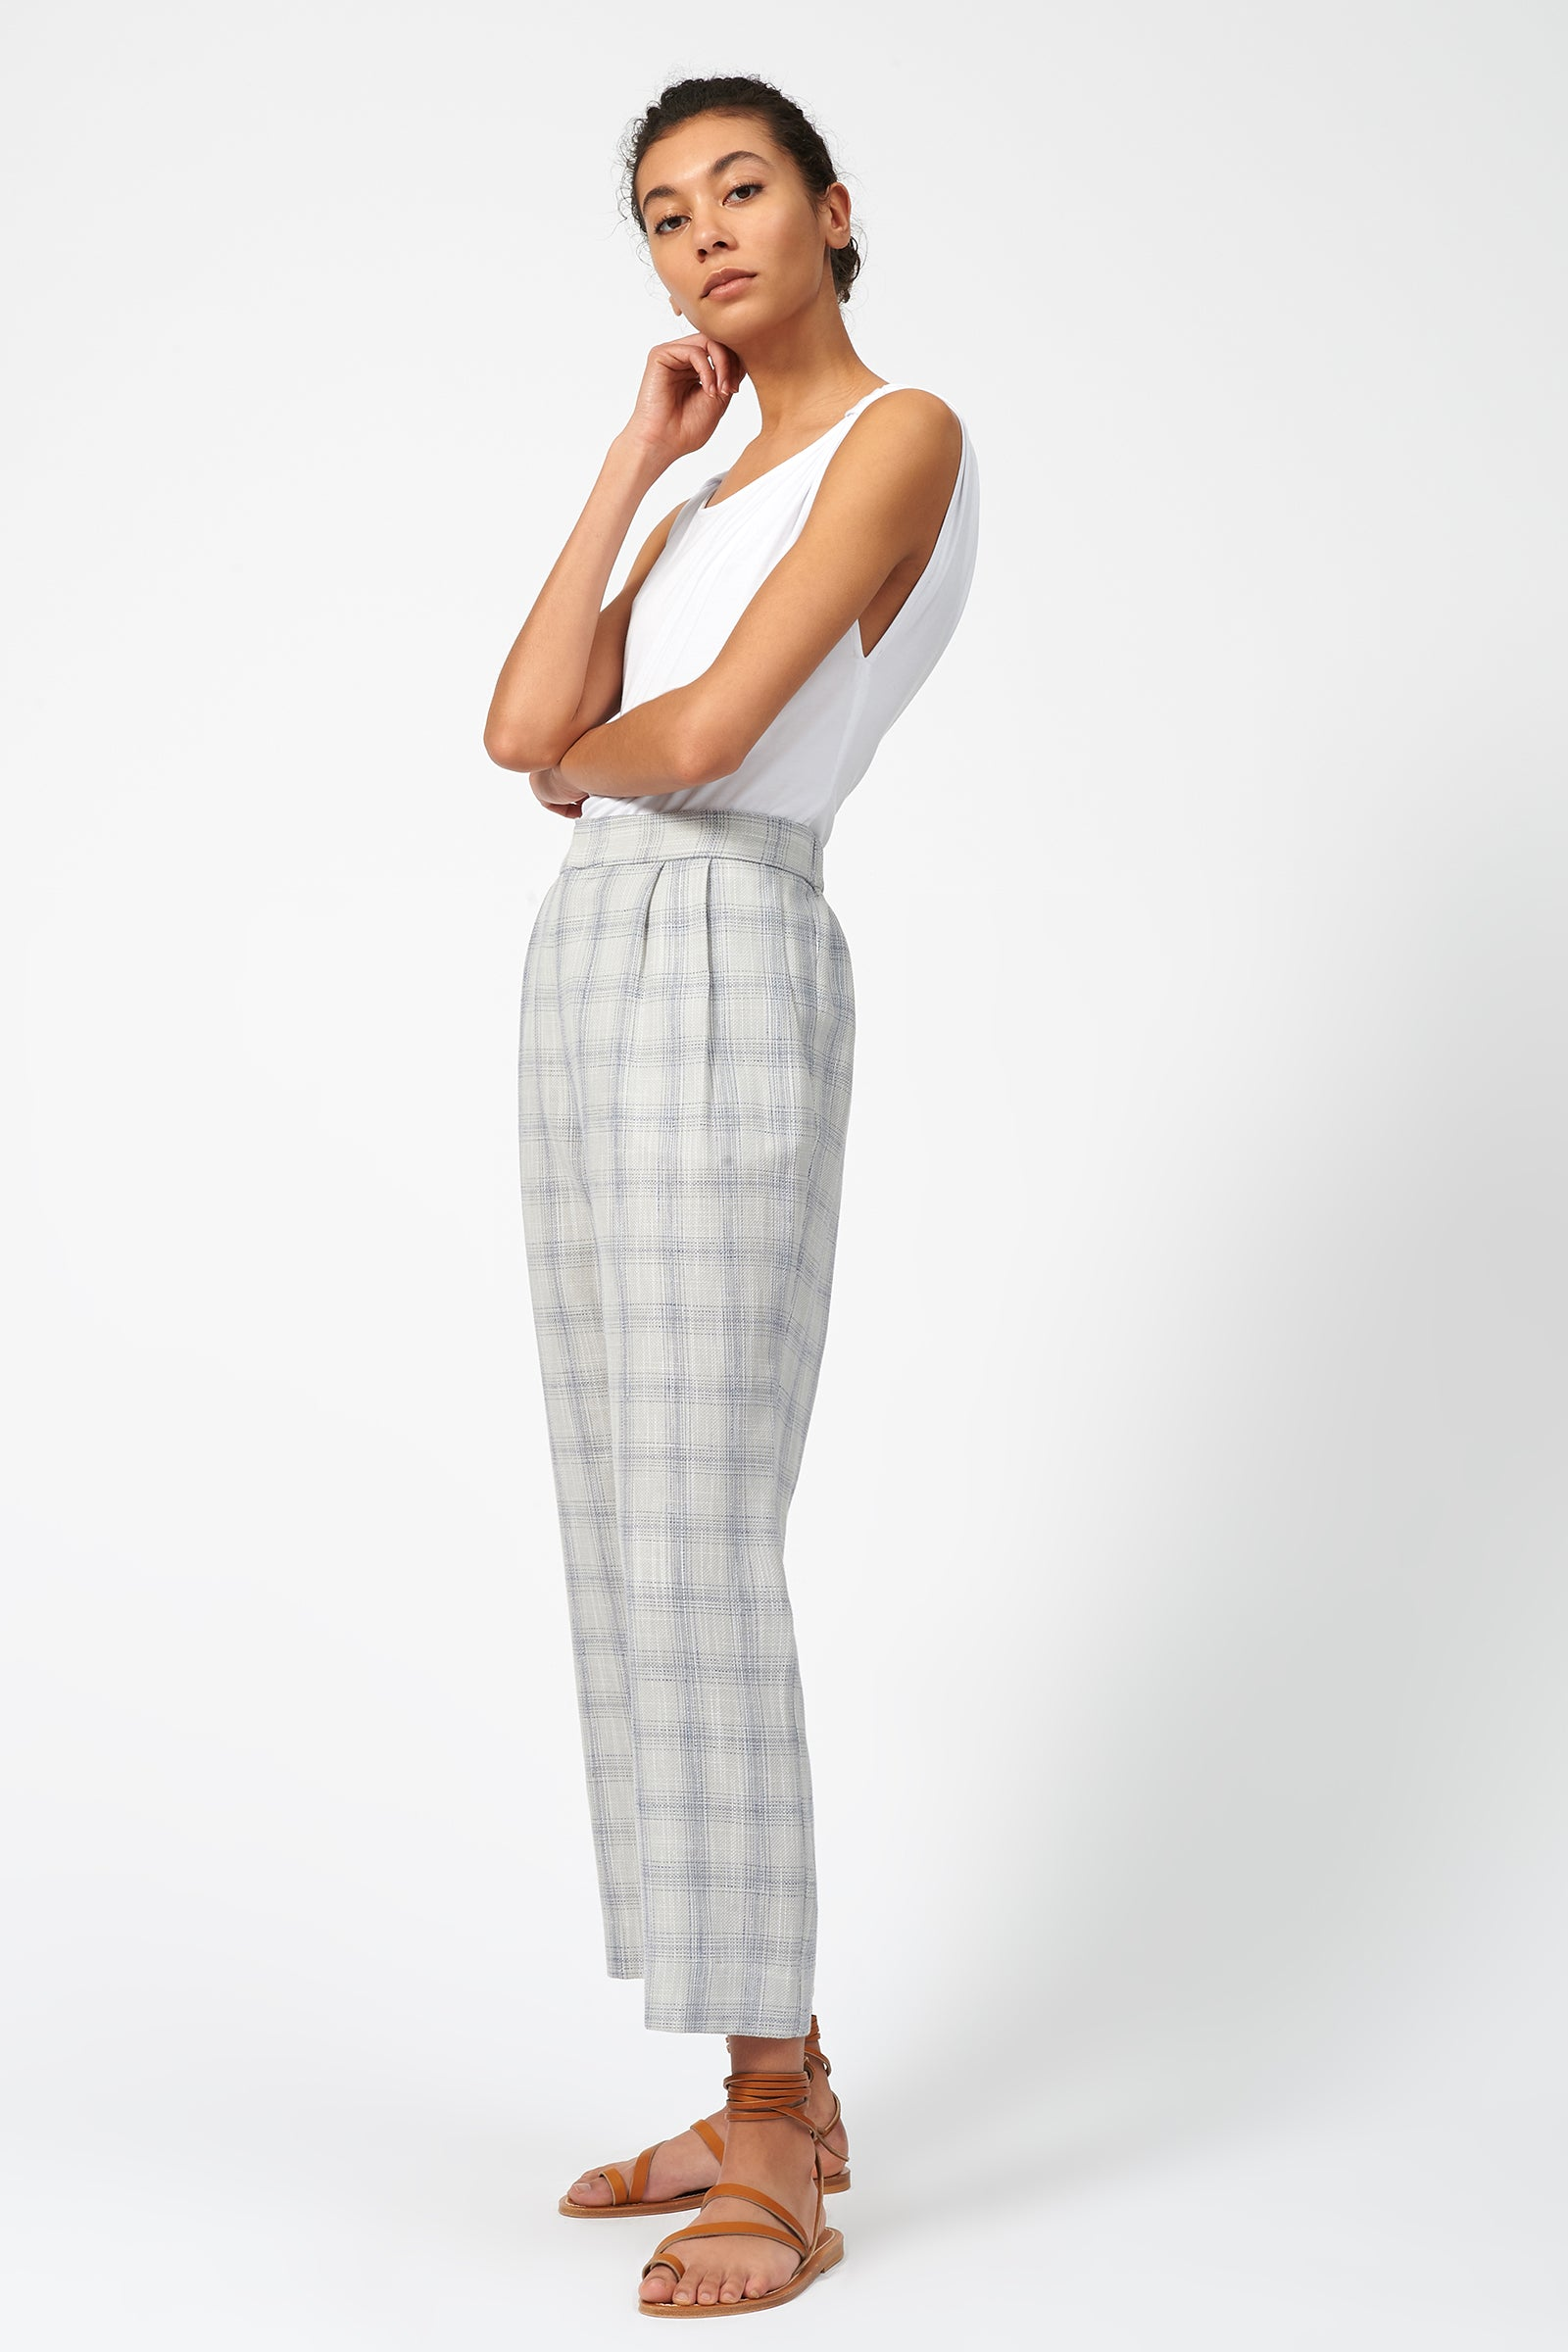 Kal Rieman Elastic Back Trouser in Summer Plaid on Model Full Front Side View